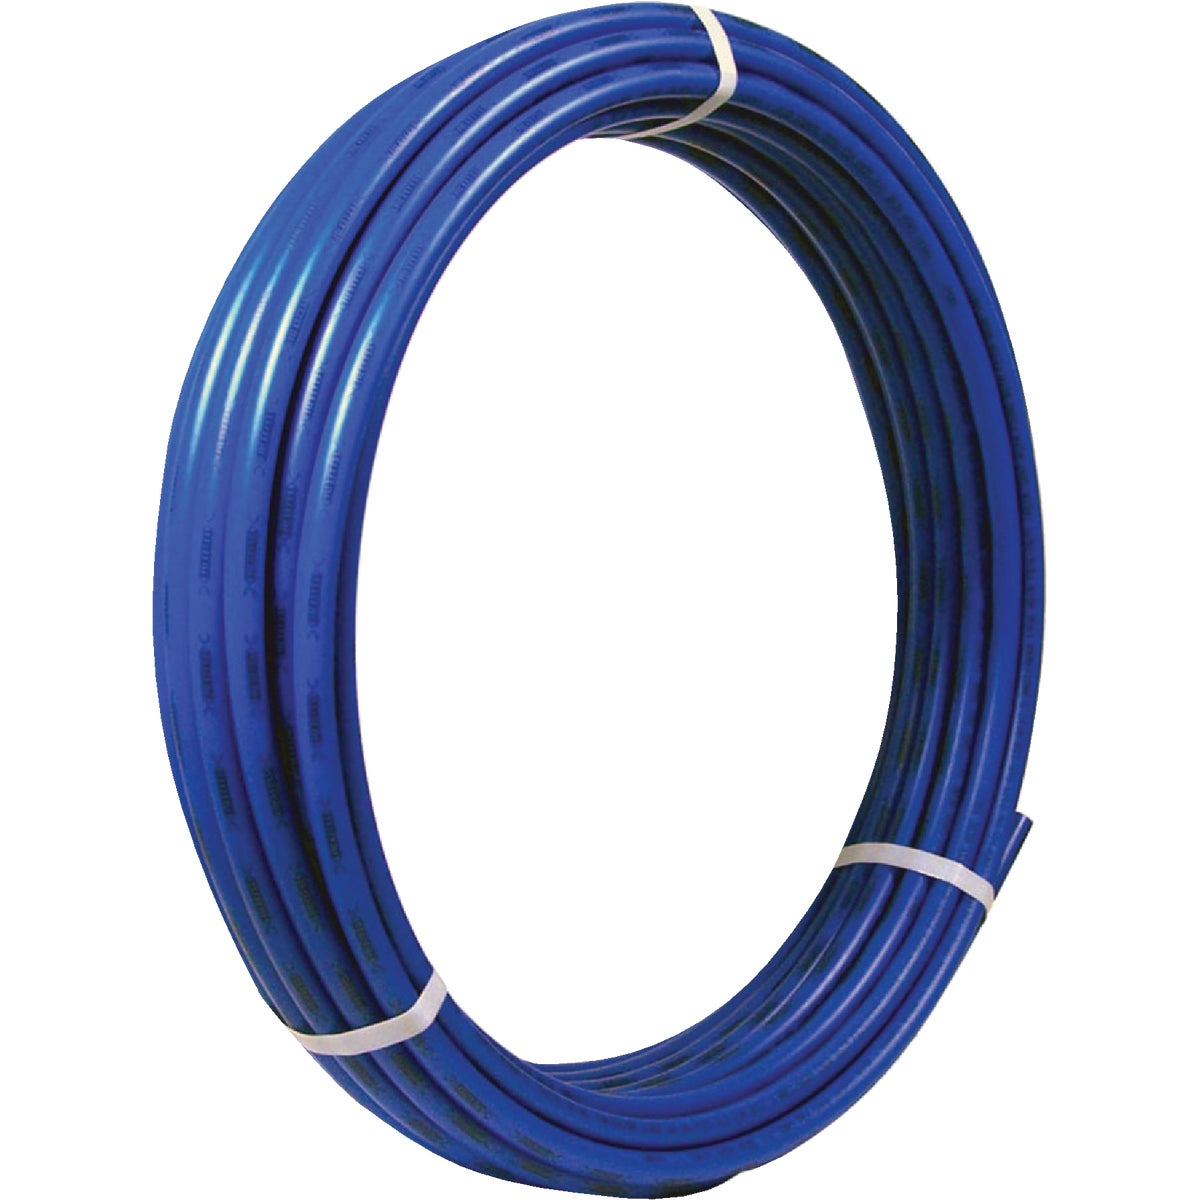 "3/4""X100 BLUE PEX TUBING - P-34-100B by Watts Regulator Co"